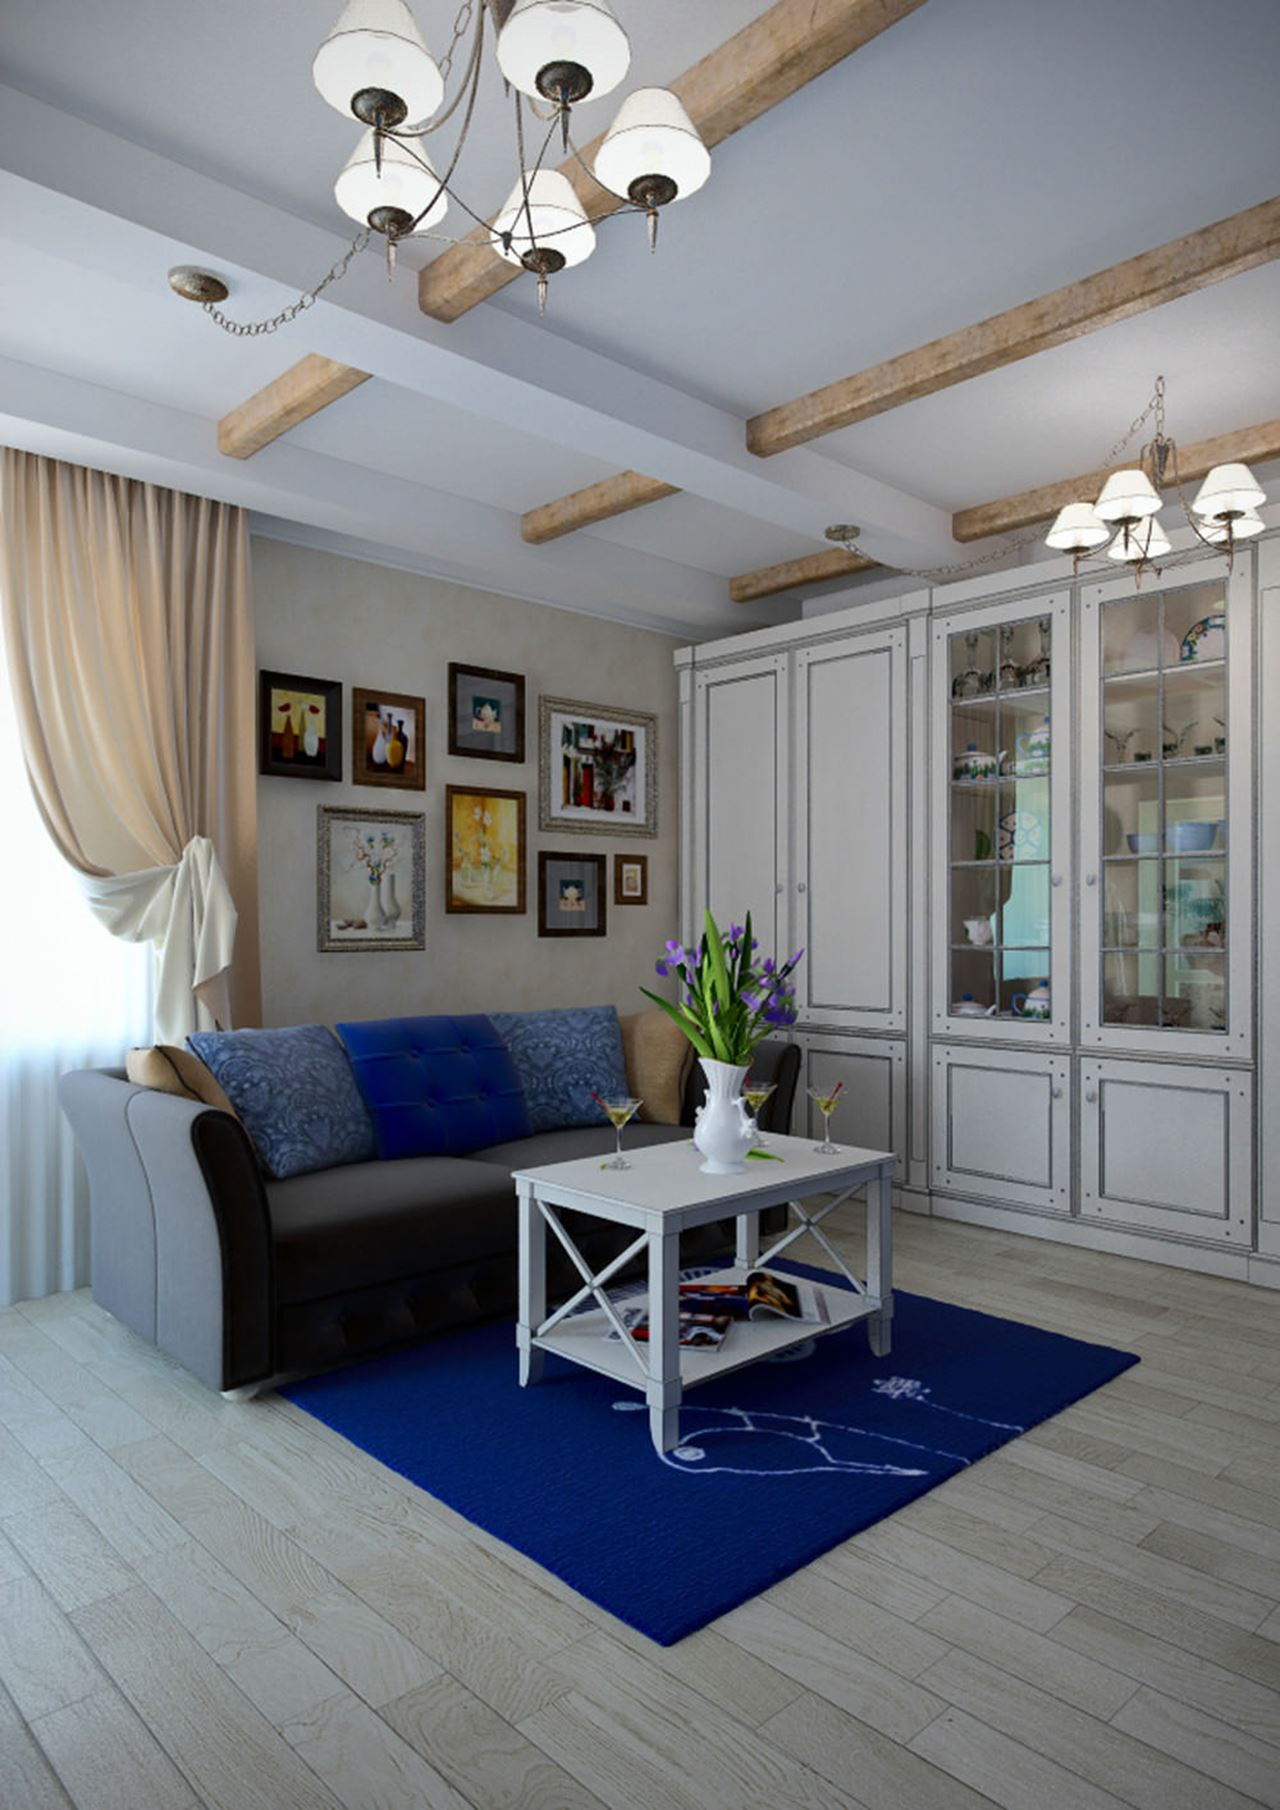 Living Room Interior Decorating: Apartment Interior Design In The Provence Style